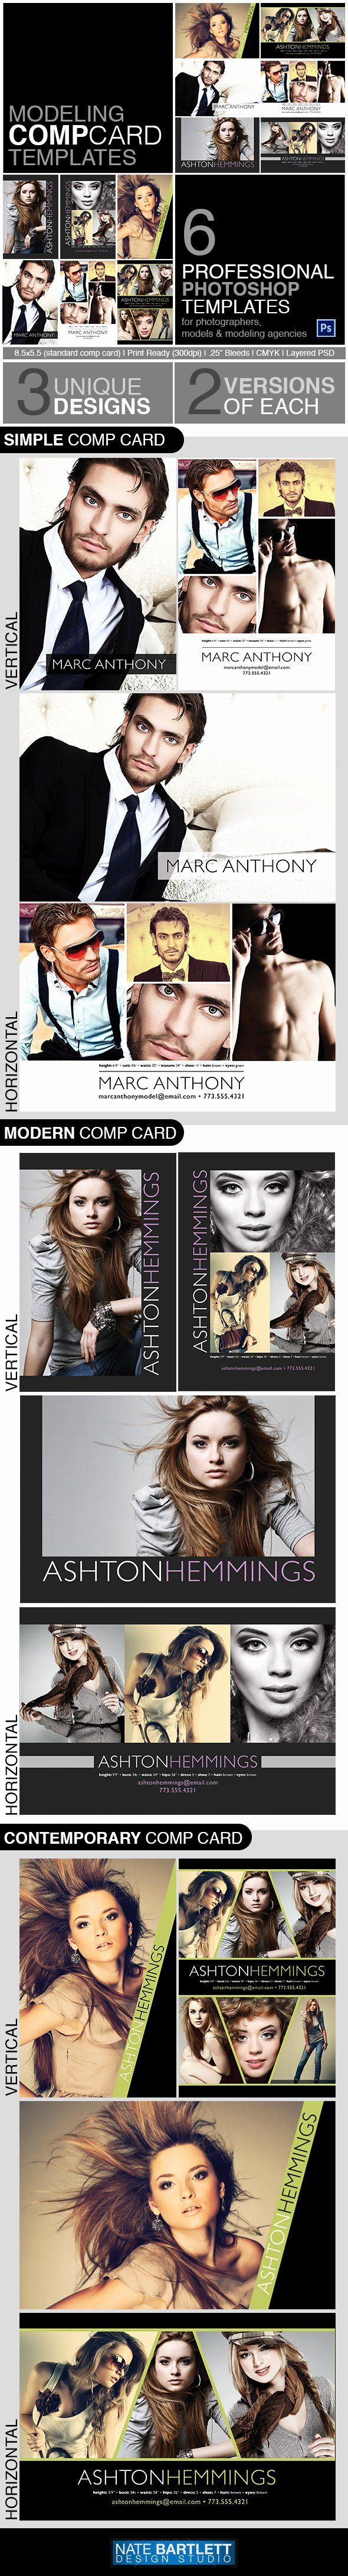 Comp Card Template Psd Download Lovely Model P Card Template Kit Preview By Natebelow0 On Model Comp Card Card Templates Free Card Template